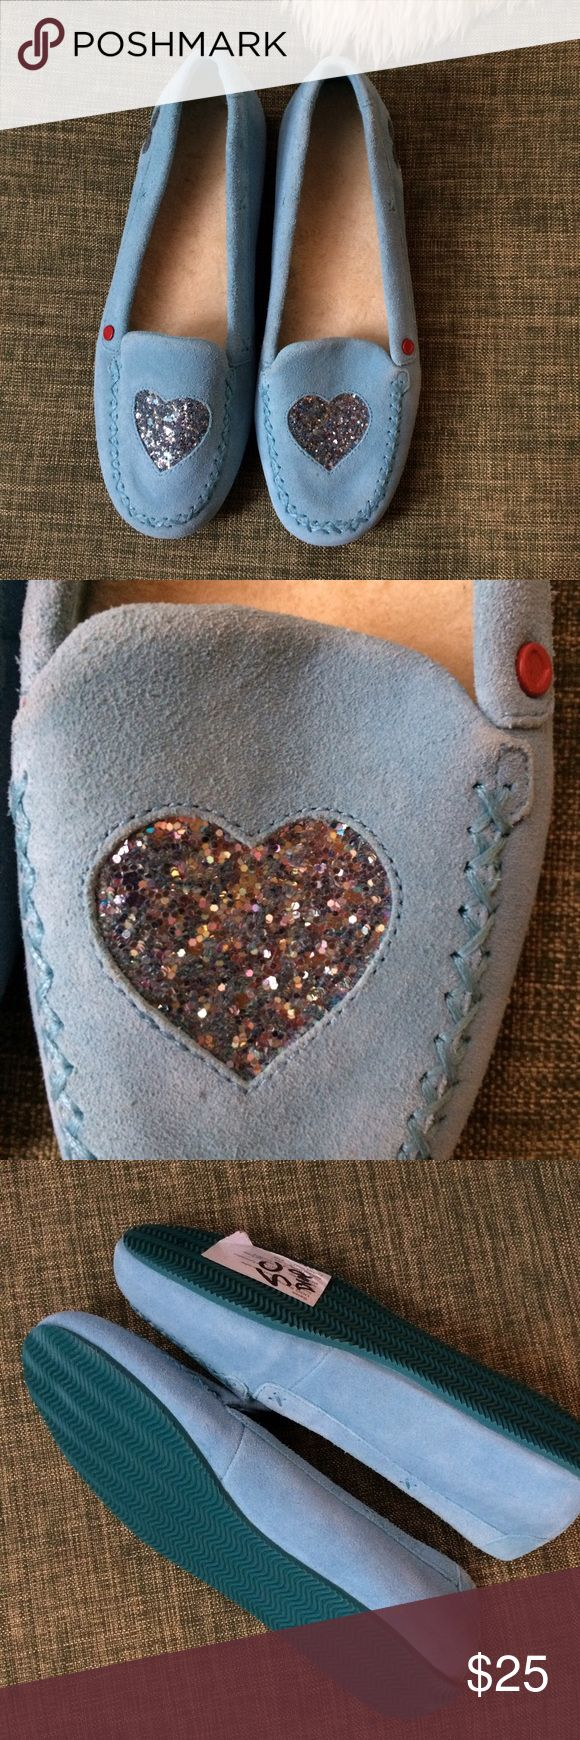 Pale blue Ugg slippers, size 7 Ugg slippers, pale blue with glitter heart & lambskin lining, size 7, never worn UGG Shoes Slippers